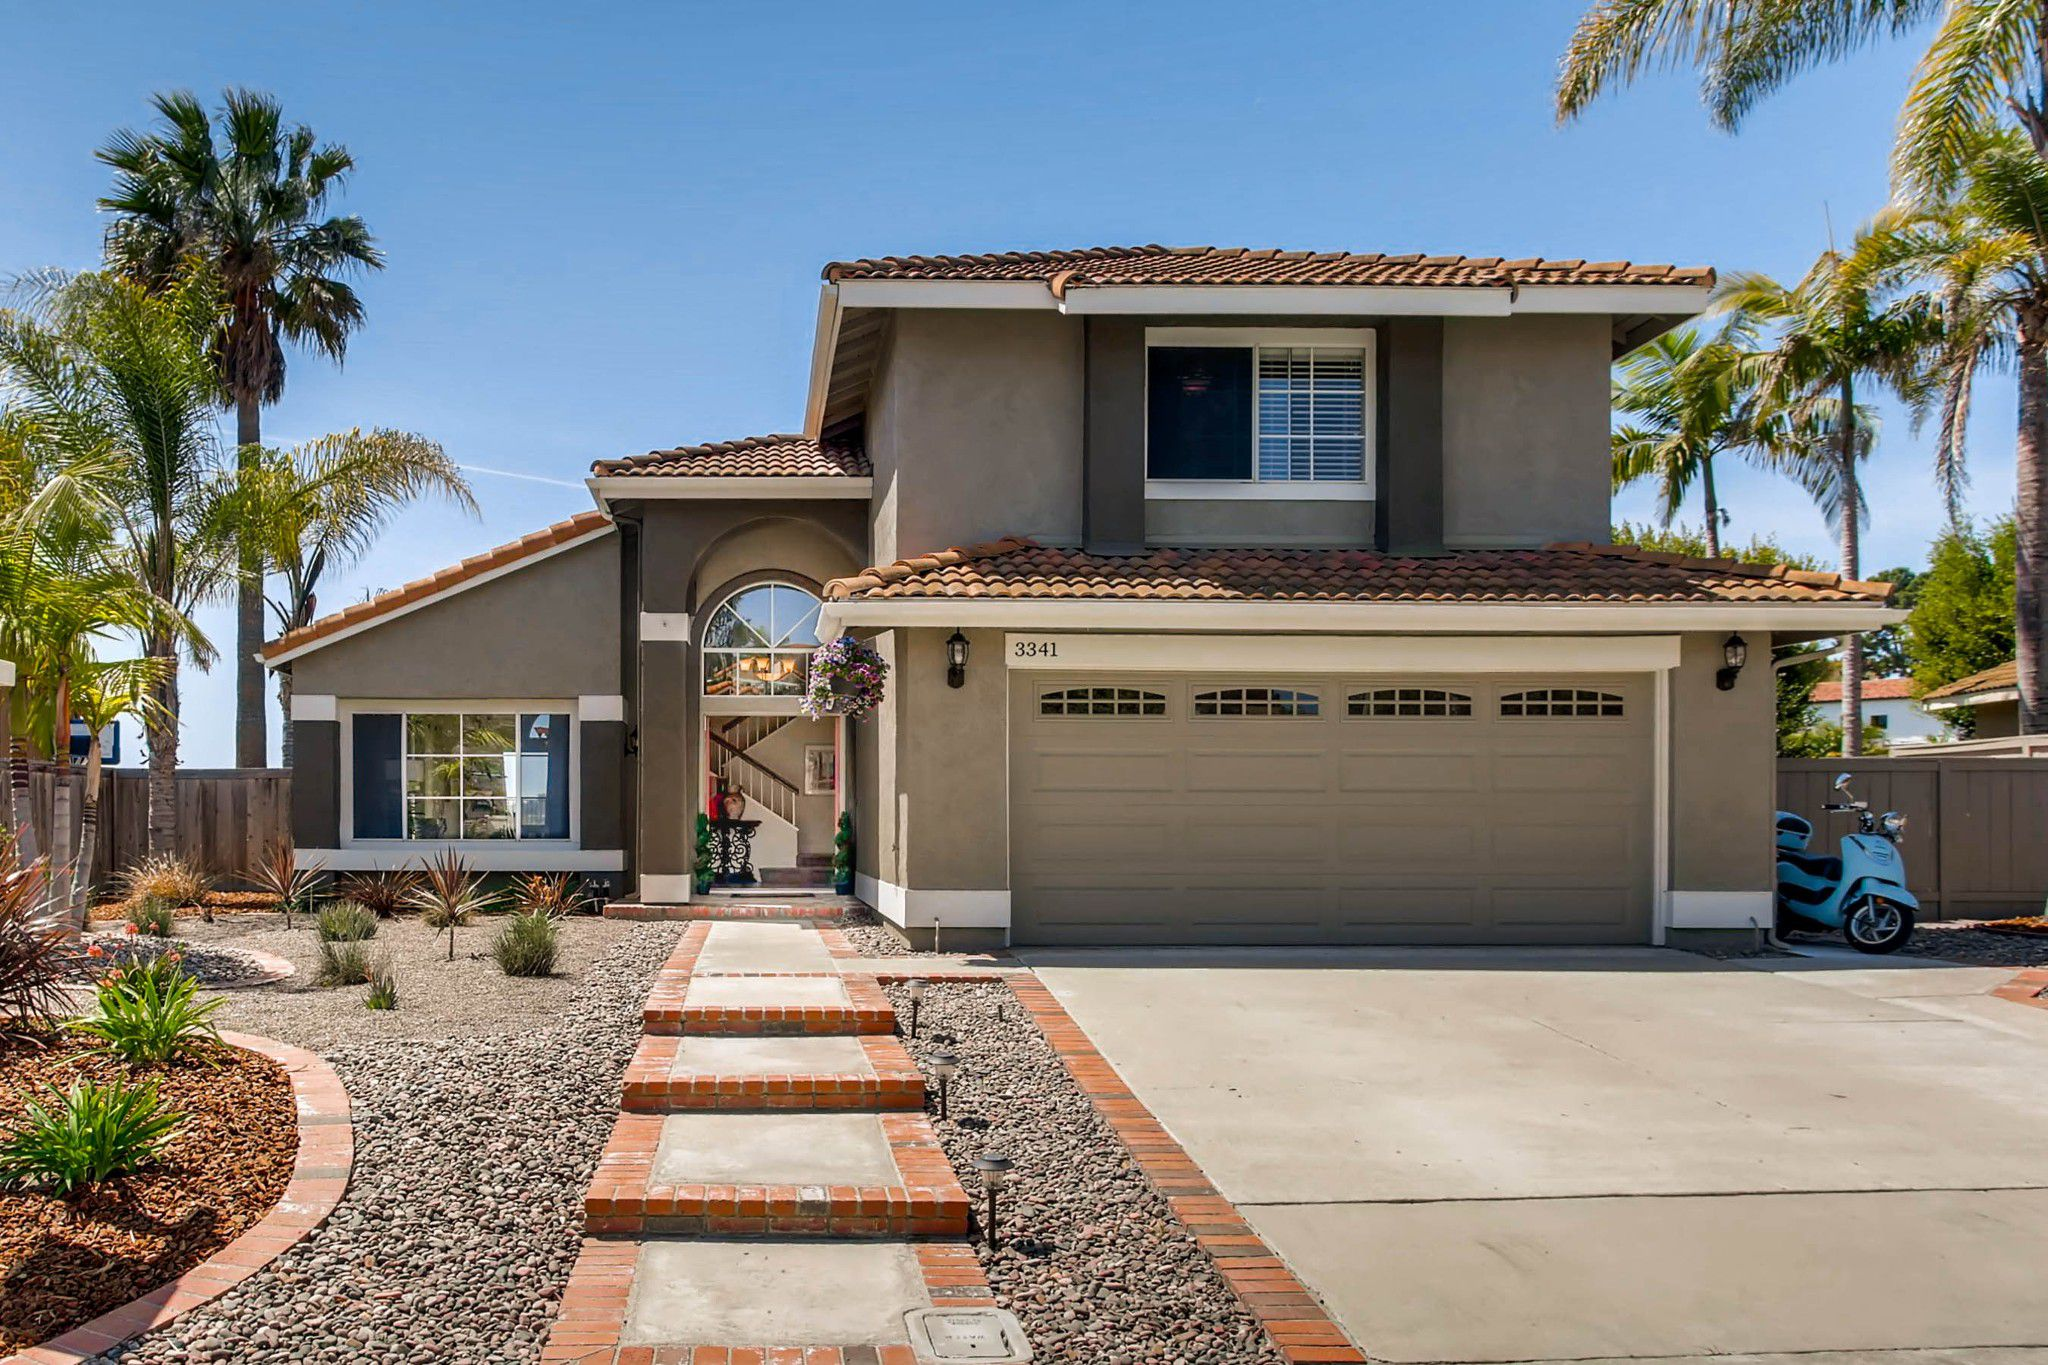 Main Photo: House for sale (San Diego)  : 5 bedrooms : 3341 Golfers Dr in Oceanside